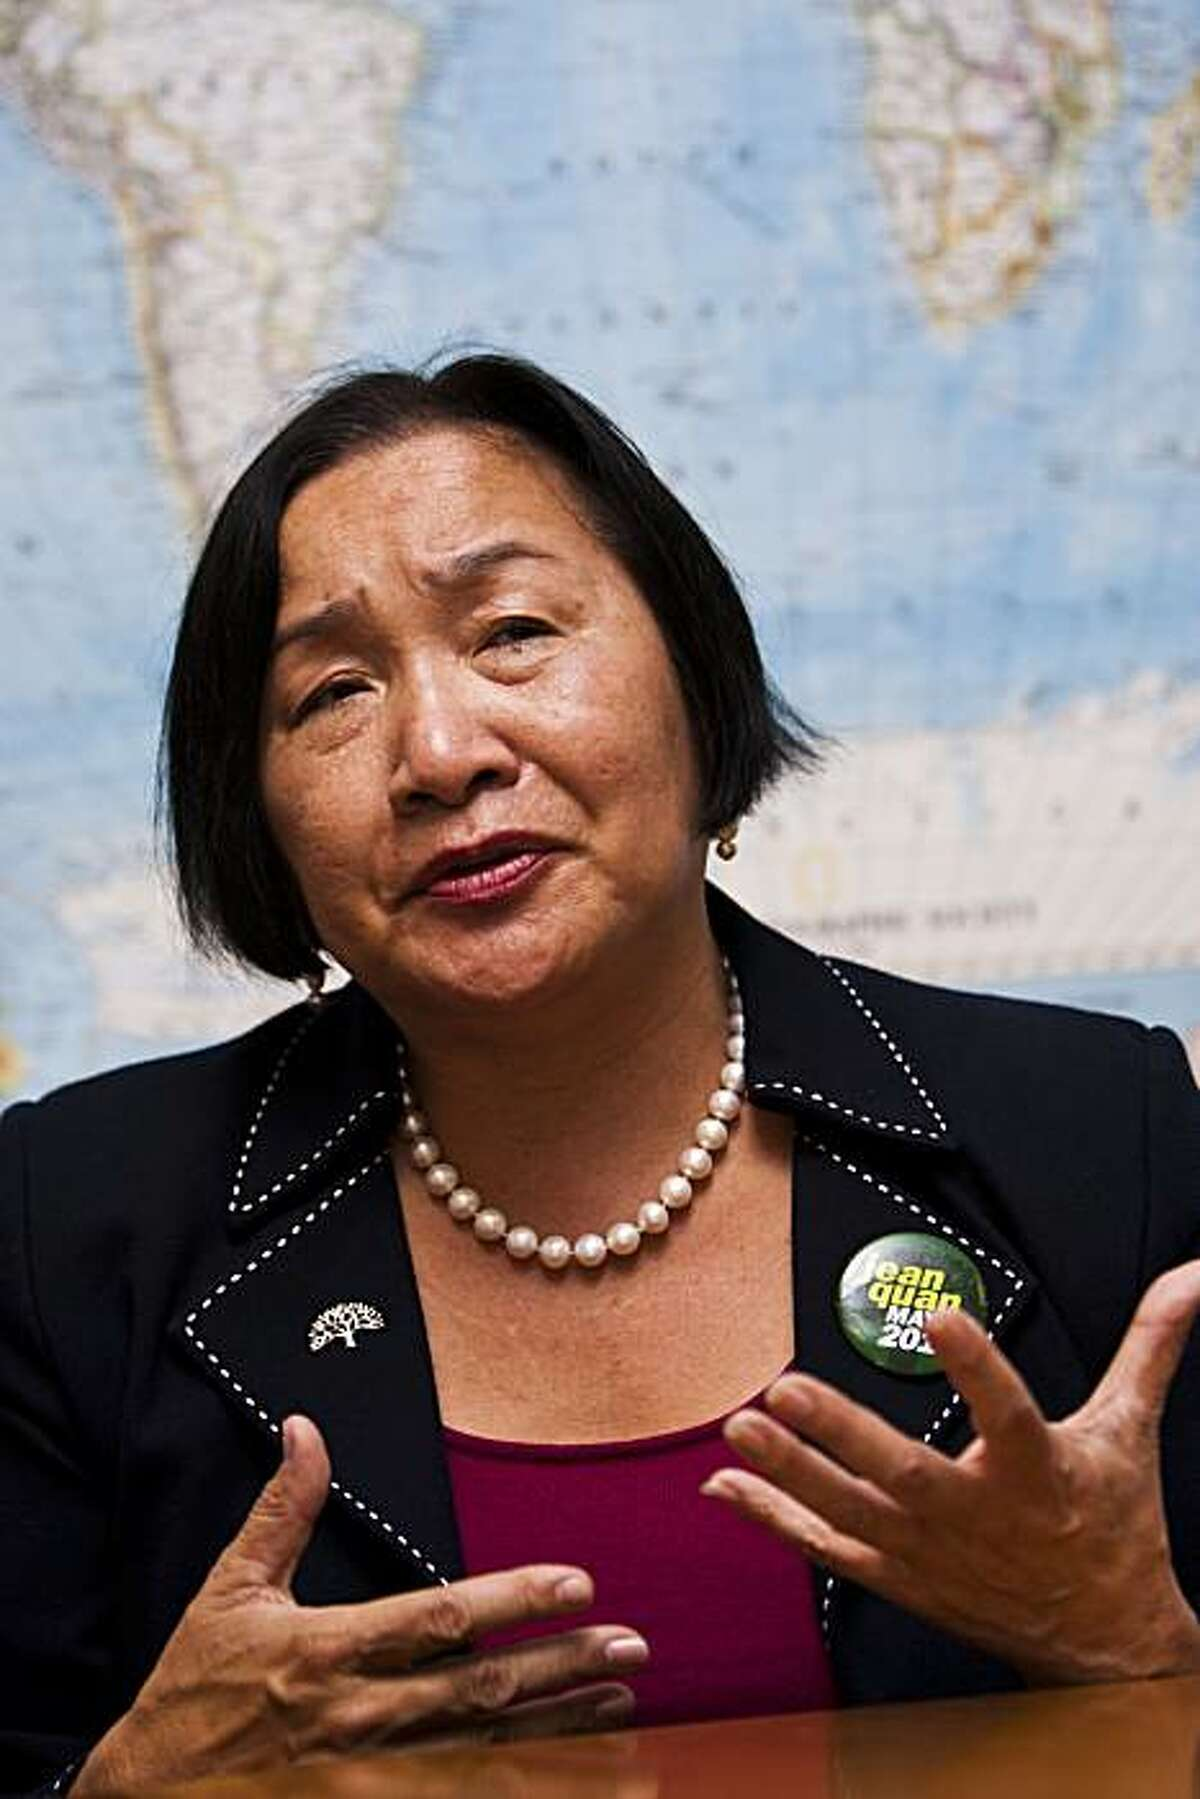 Jean Quan, candidate for mayor of Oakland, met with the San Francisco Chronicle Editorial Board on Wednesday, Oct 6, 2010.